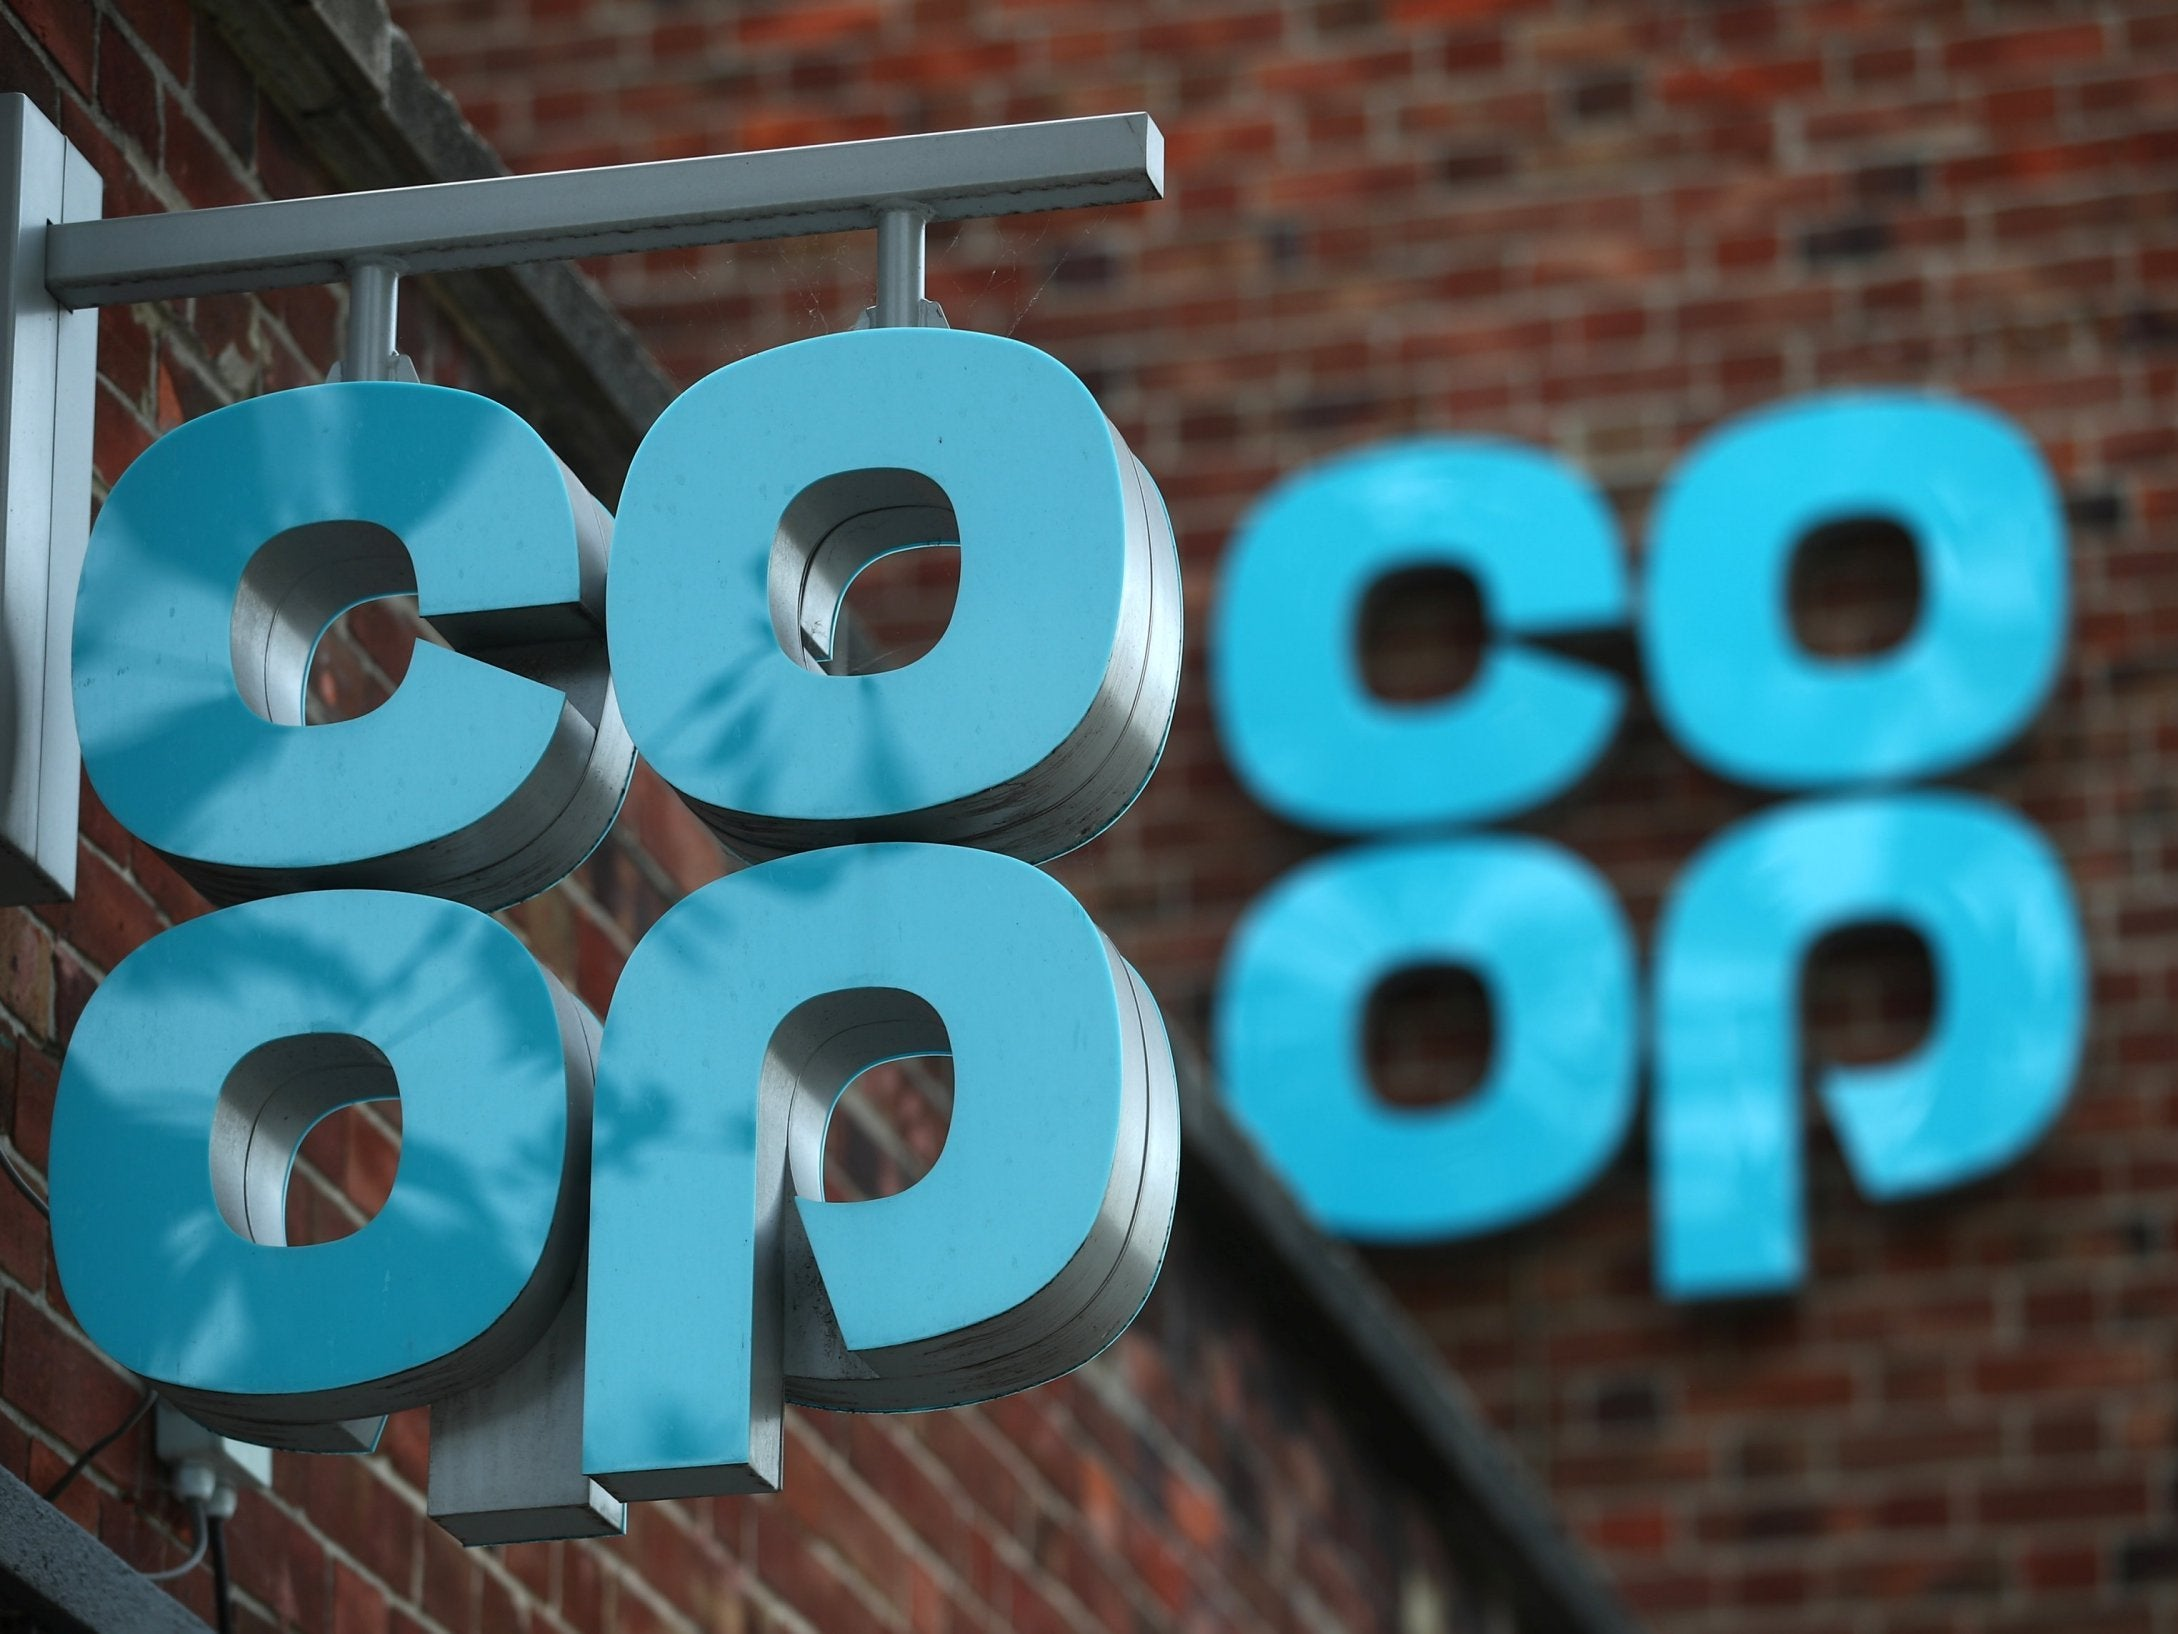 co op workers fear being attacked at work as they accuse management